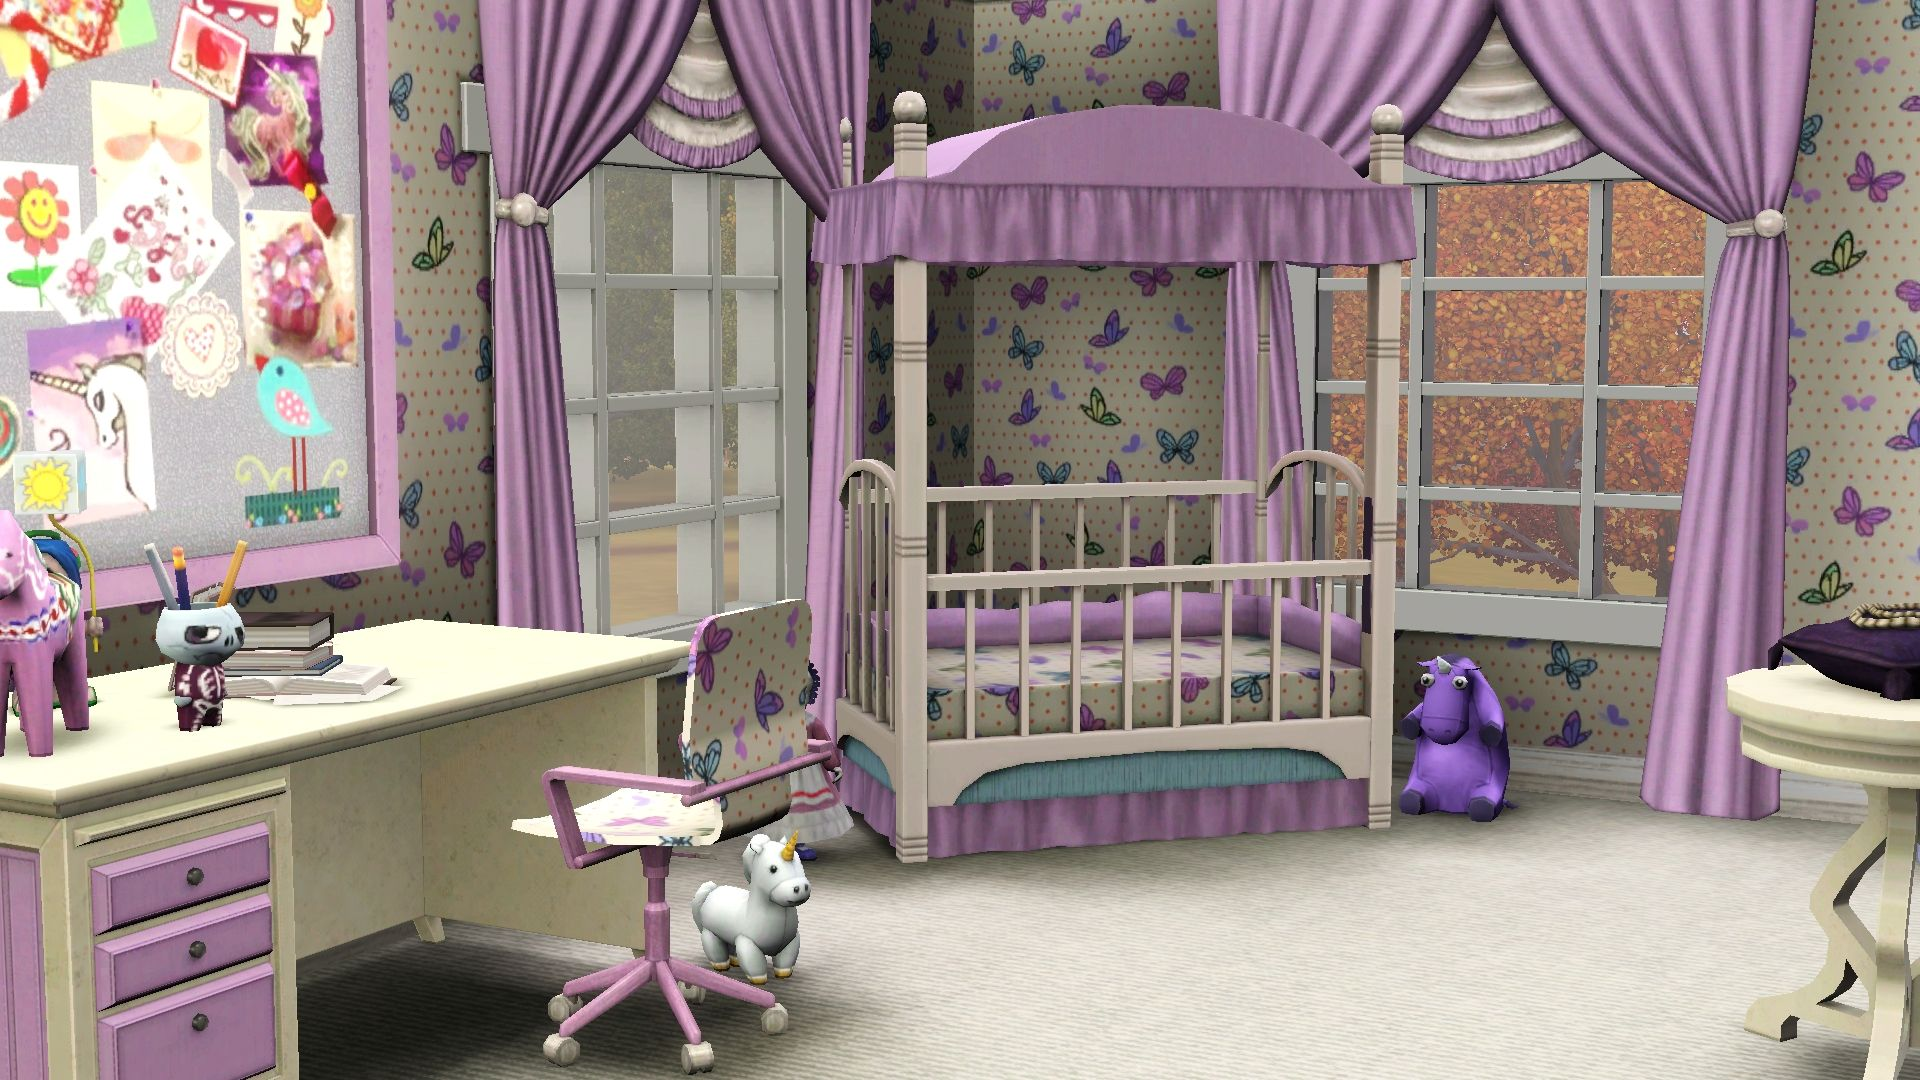 Cute Baby Rooms Screenshot The Sims 3 Cute Pink Baby Room For More